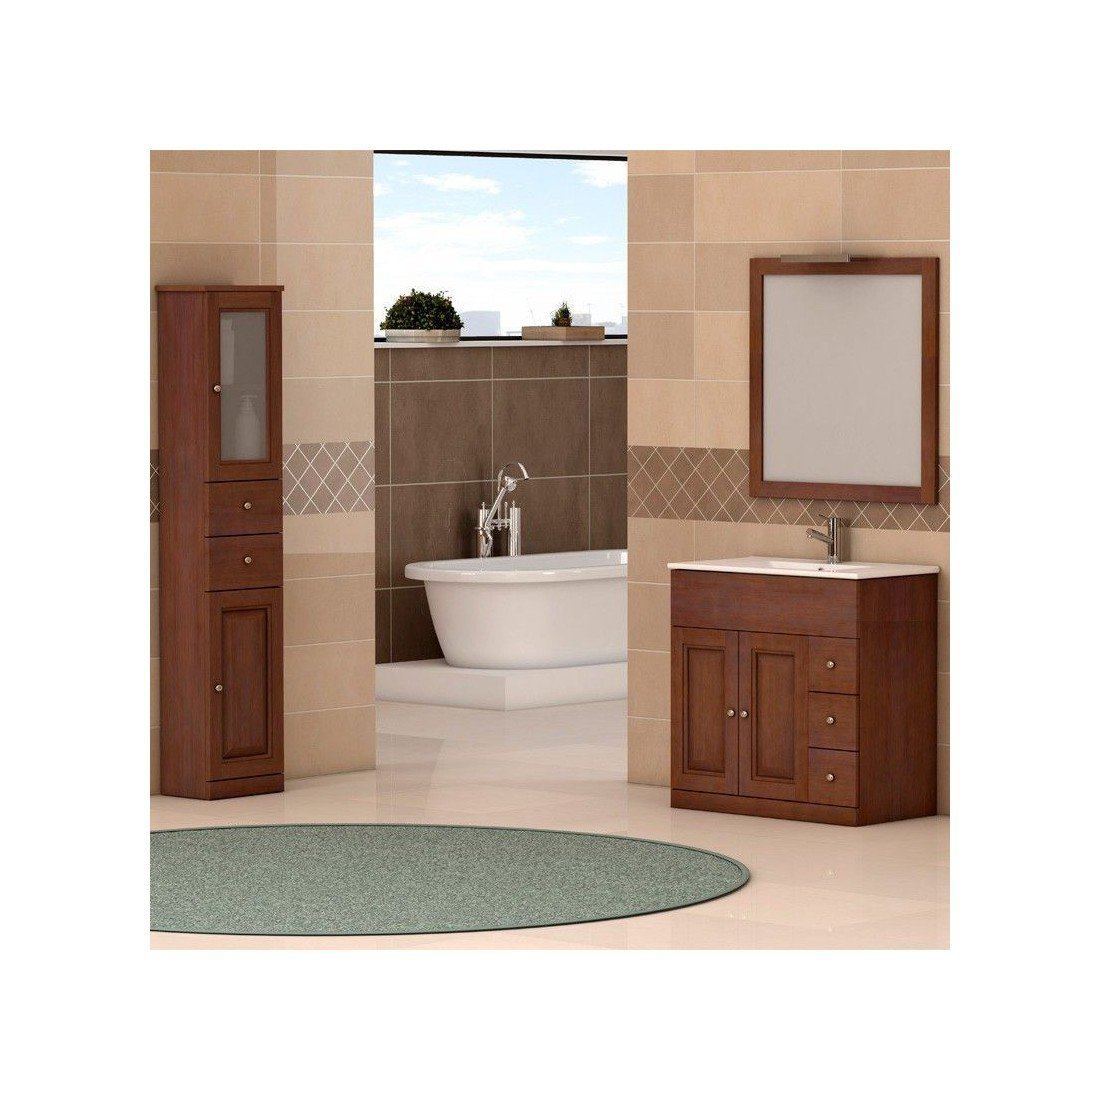 Mueble de ba o cl sico segura the bath for Muebles d3 bano